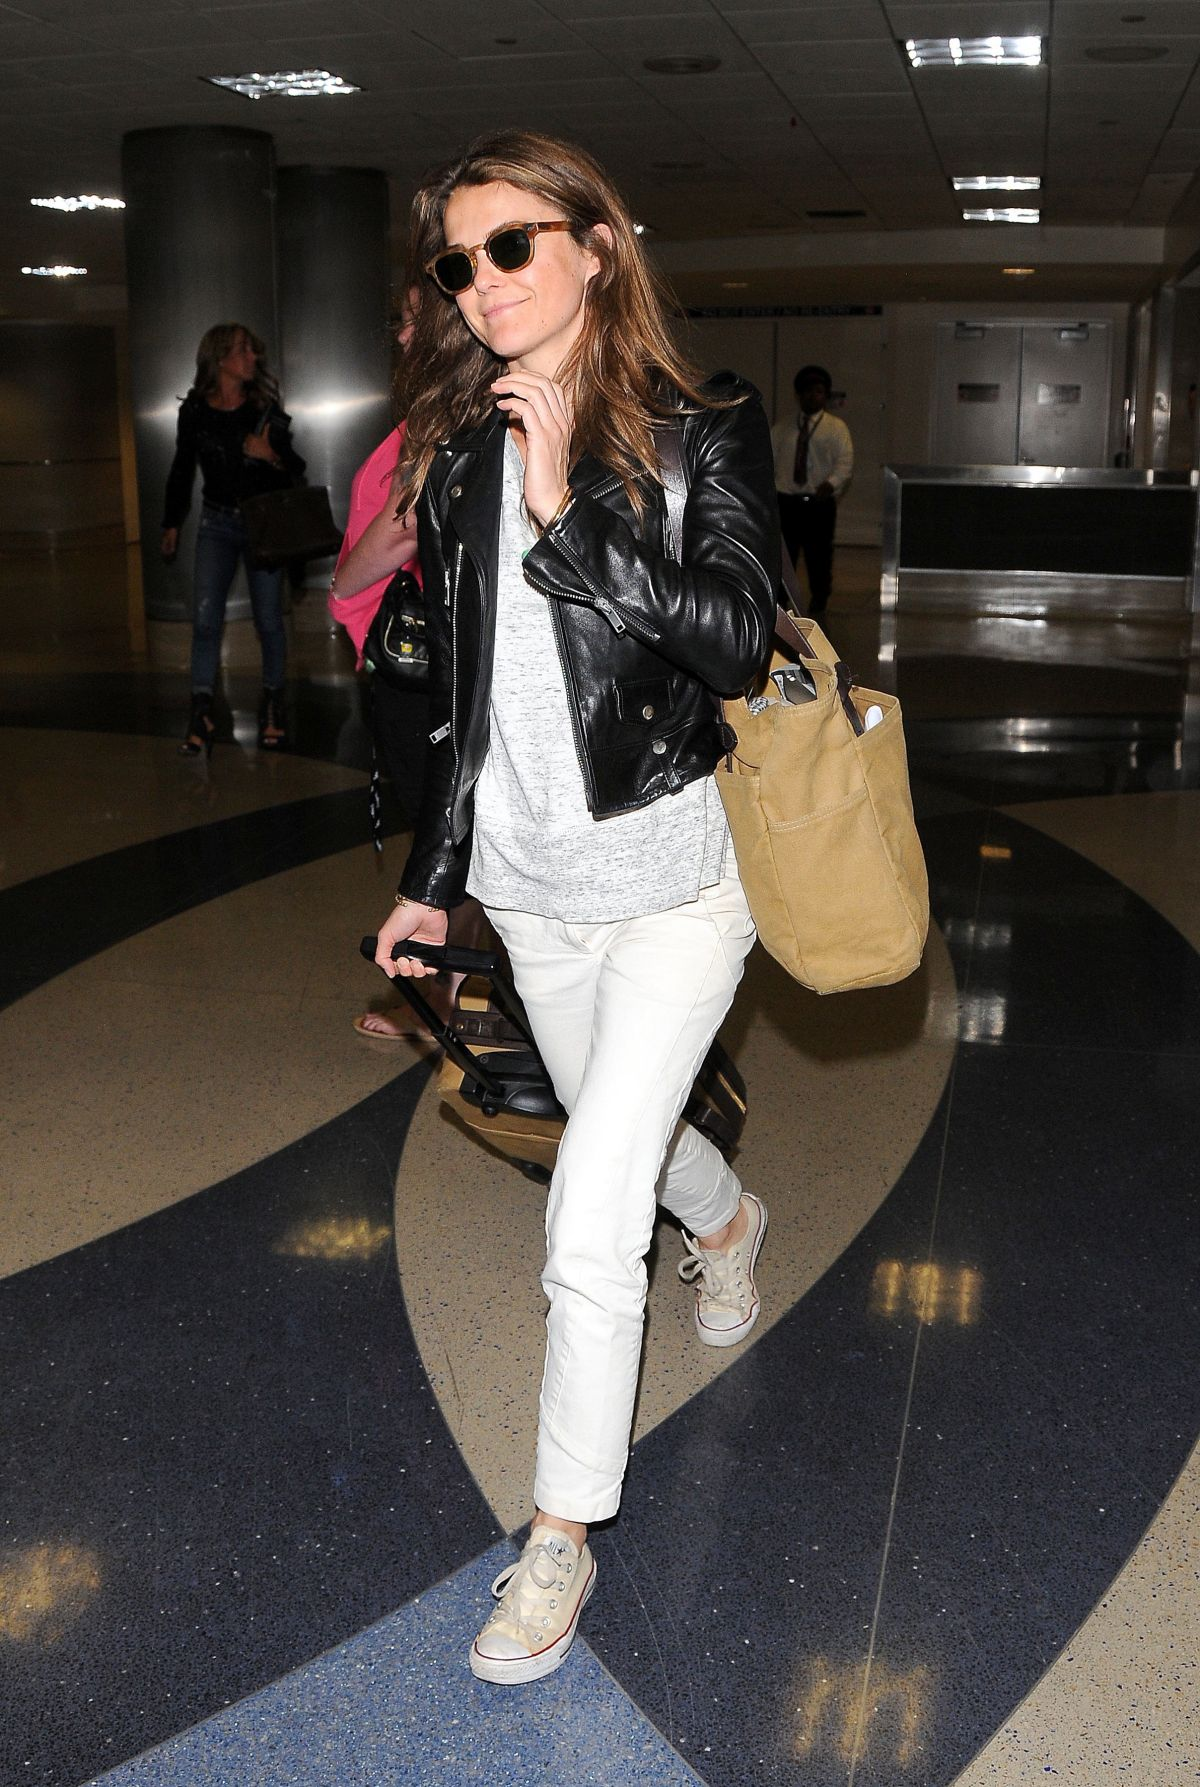 KERI RUSSEL at LAX Airport in Los Angeles